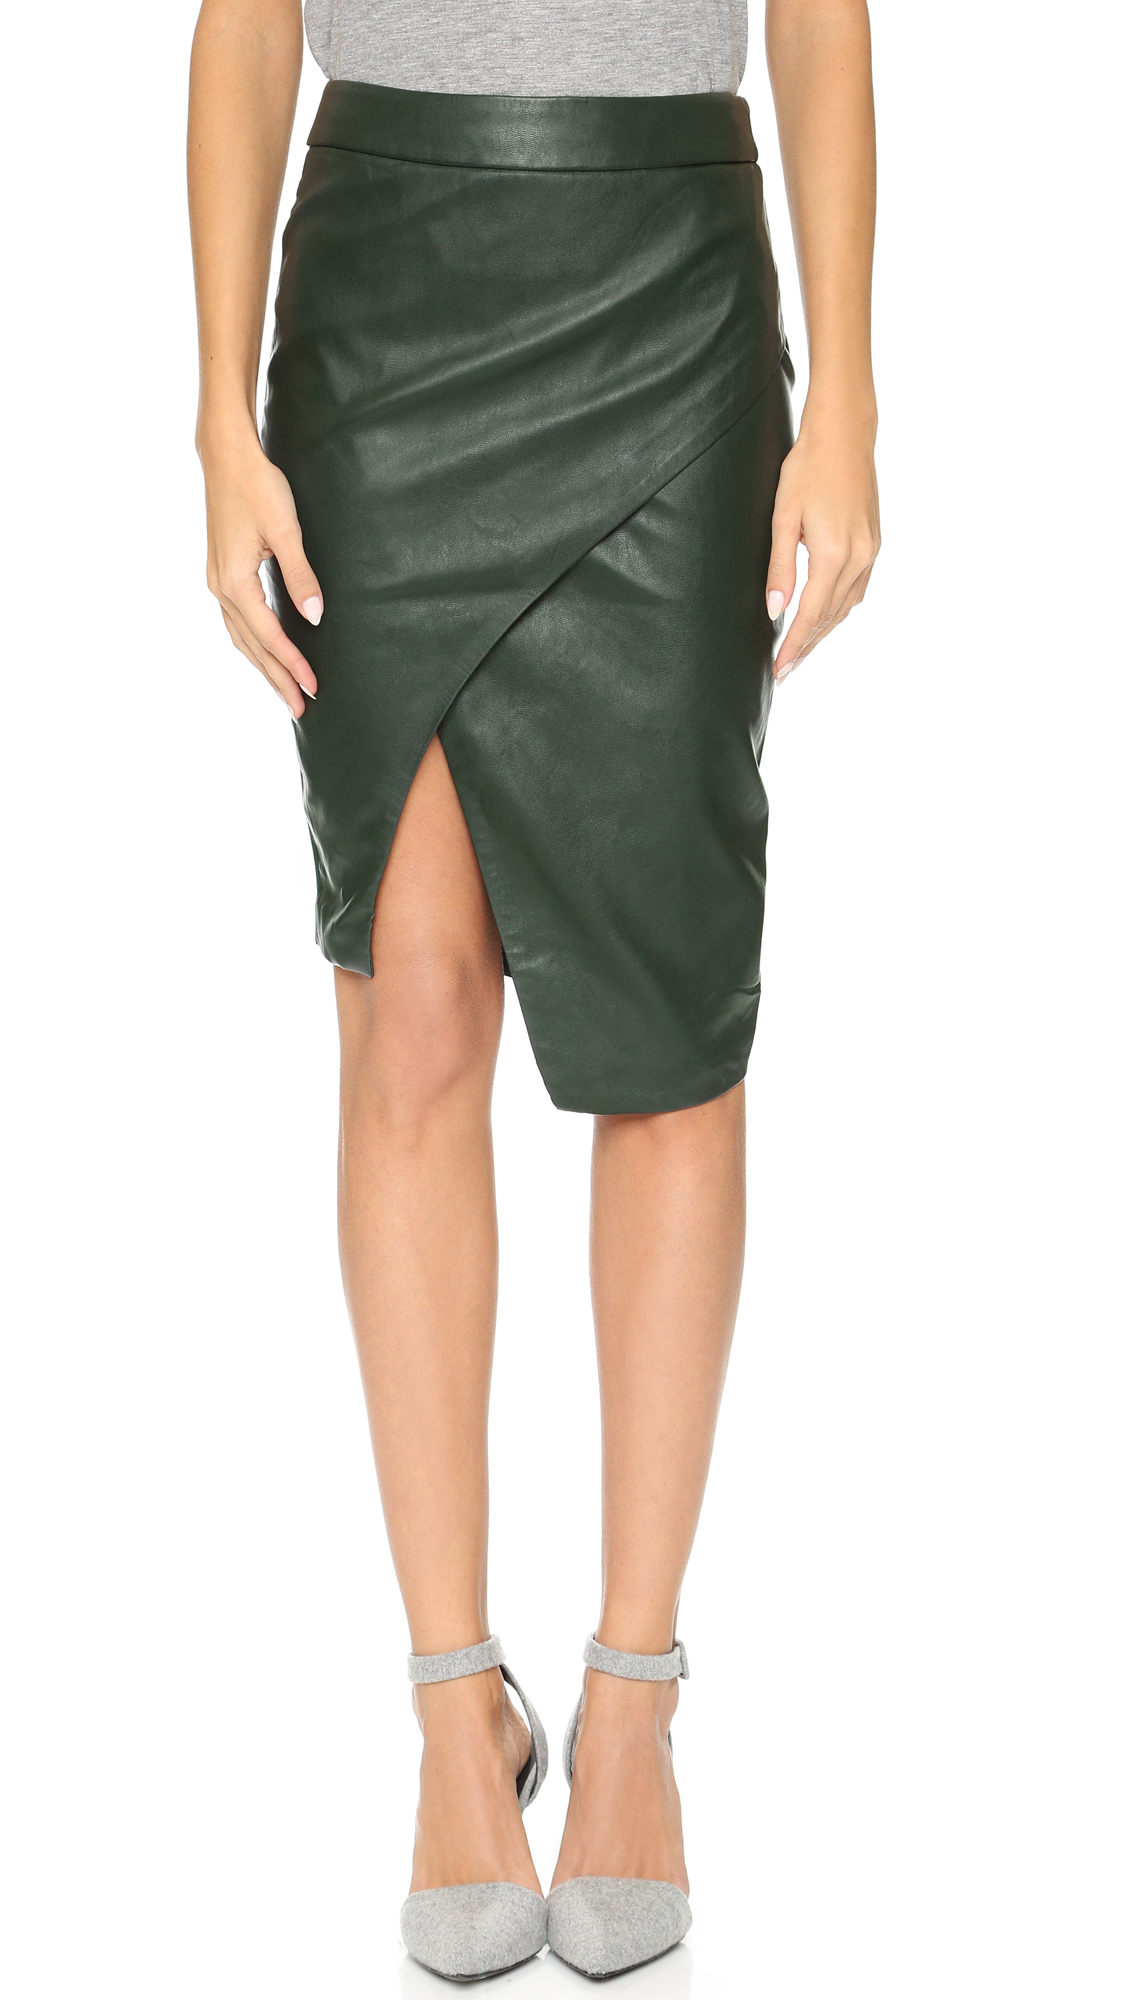 Blaque label Sculptural Faux Leather Skirt in Green | Lyst